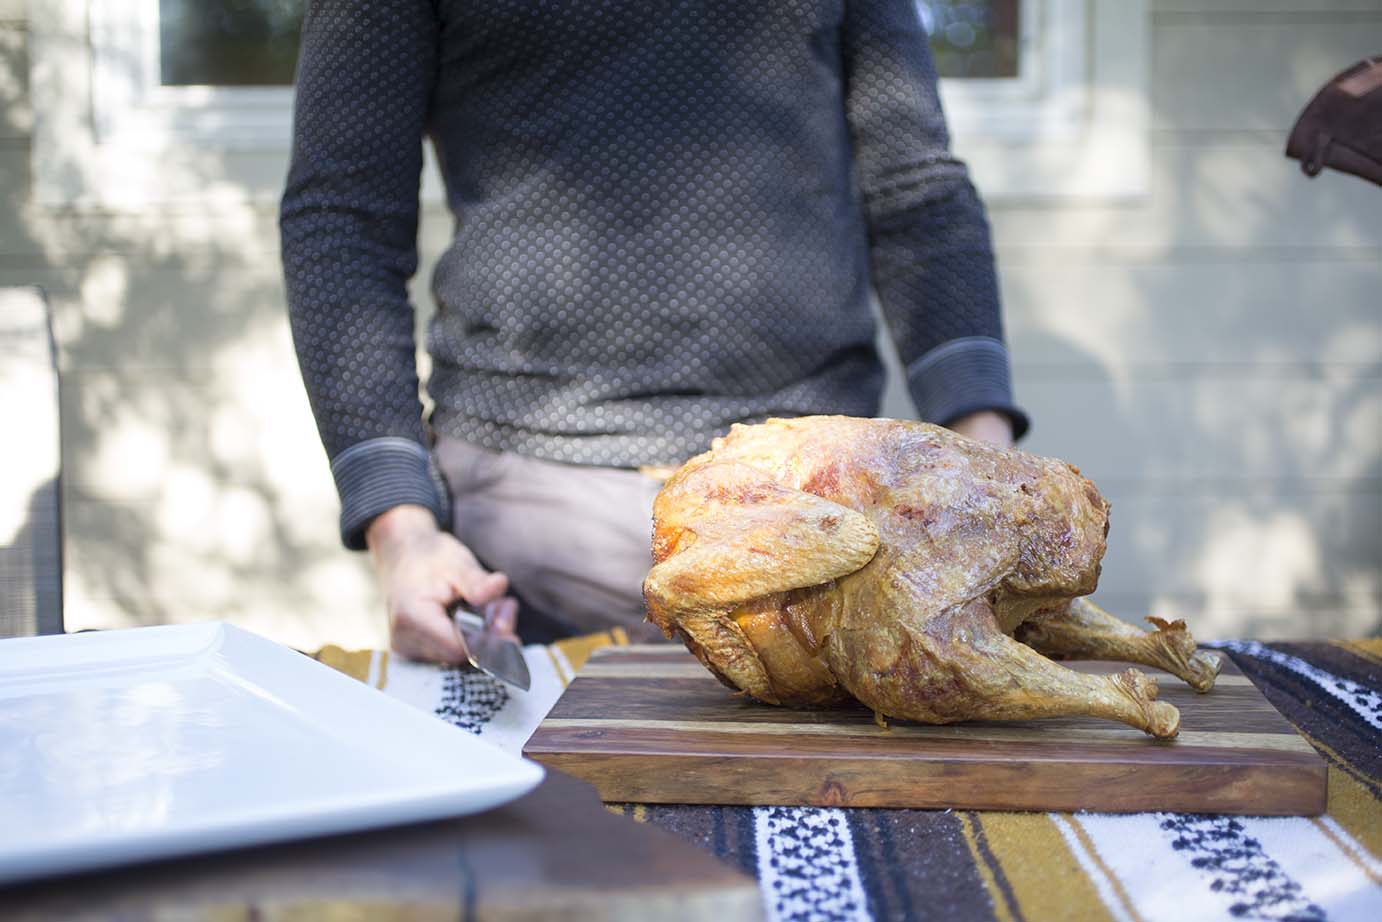 A crispy deep-fried turkey is shown on a wooden table in front of a man with knife